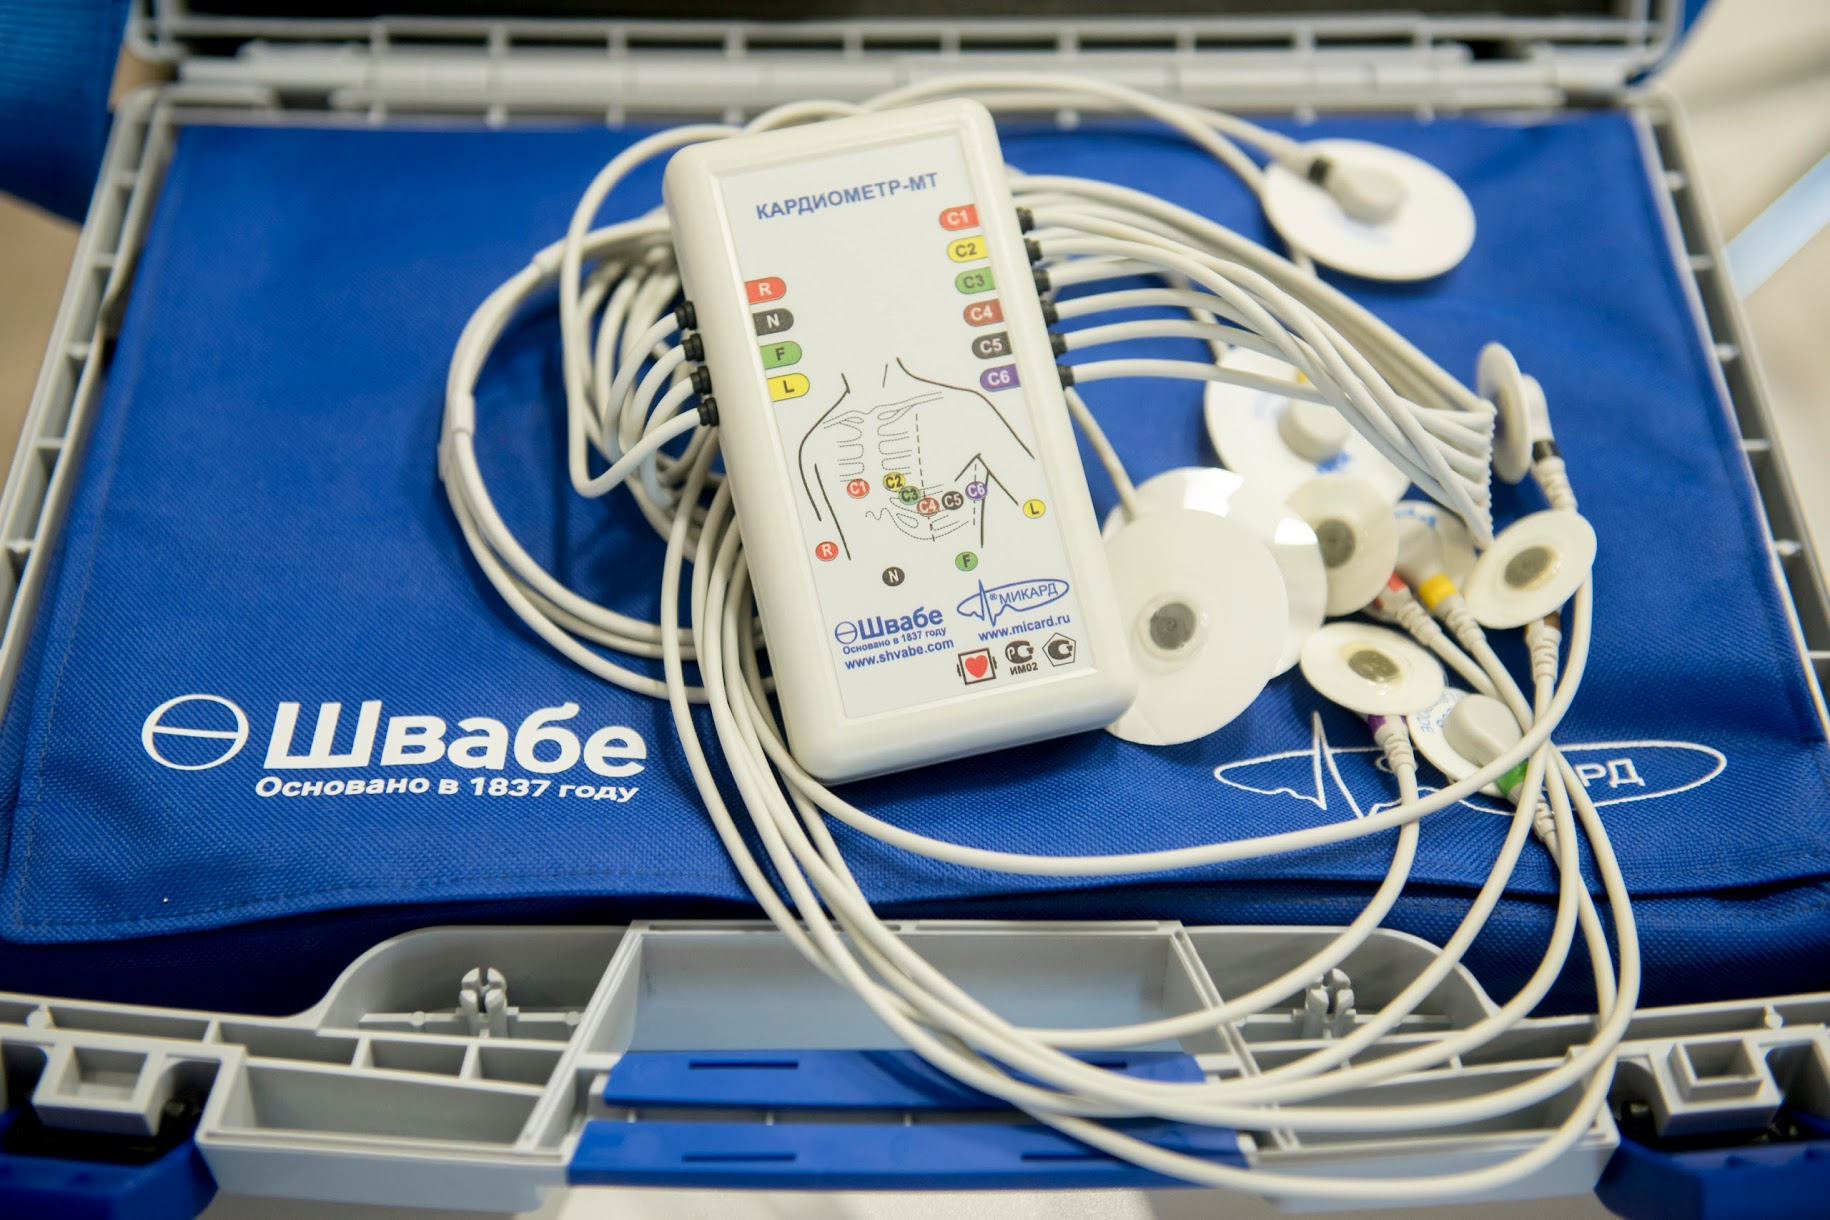 Shvabe Will Supply Medical Equipment to Kyrgyzstan Within the Framework of an UN Program